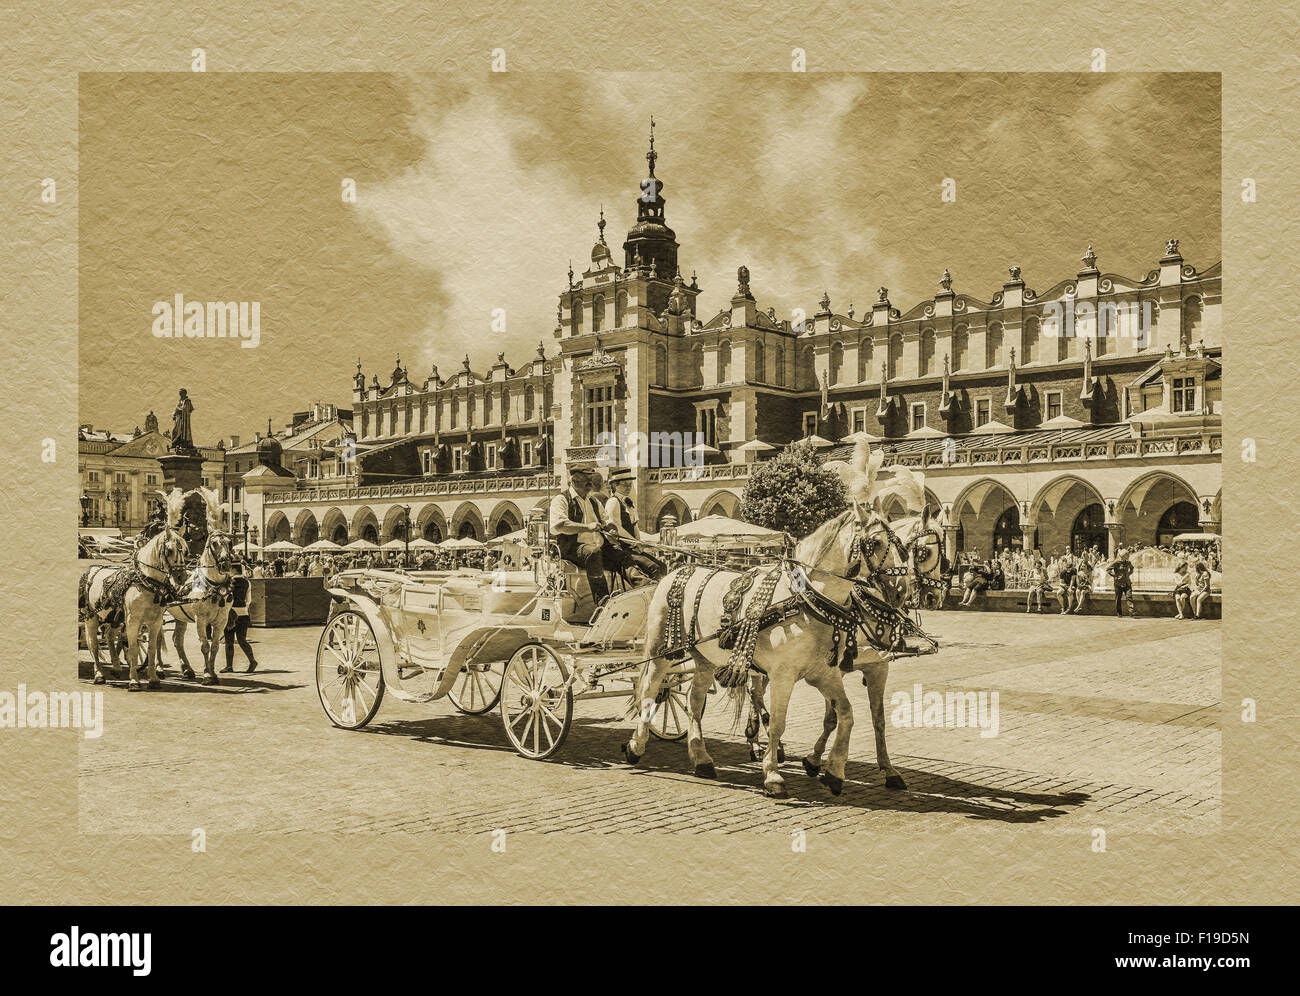 Horse-drawn carriages await tourists on the Krakow Main Market Square, Lesser Poland, Poland, Europe Stock Photo